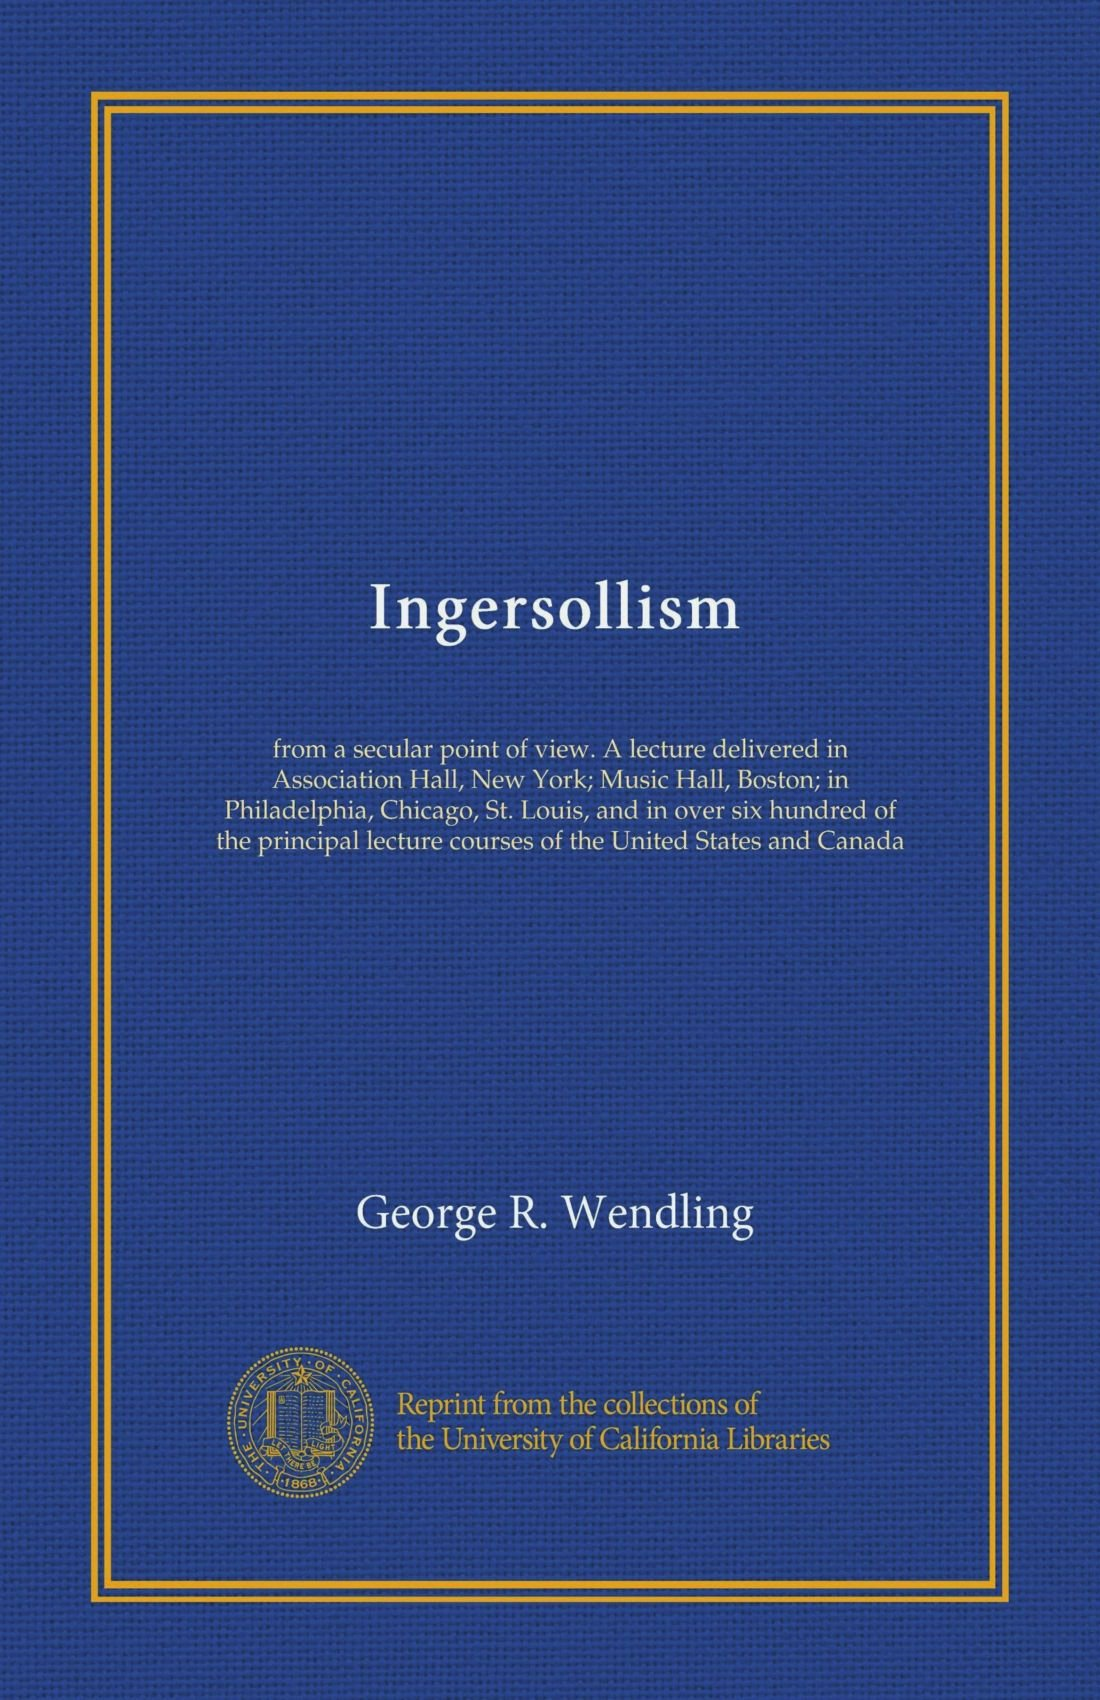 Ingersollism: from a secular point of view. A lecture delivered in Association Hall, New York; Music Hall, Boston; in Philadelphia, Chicago, St. ... courses of the United States and Canada ebook